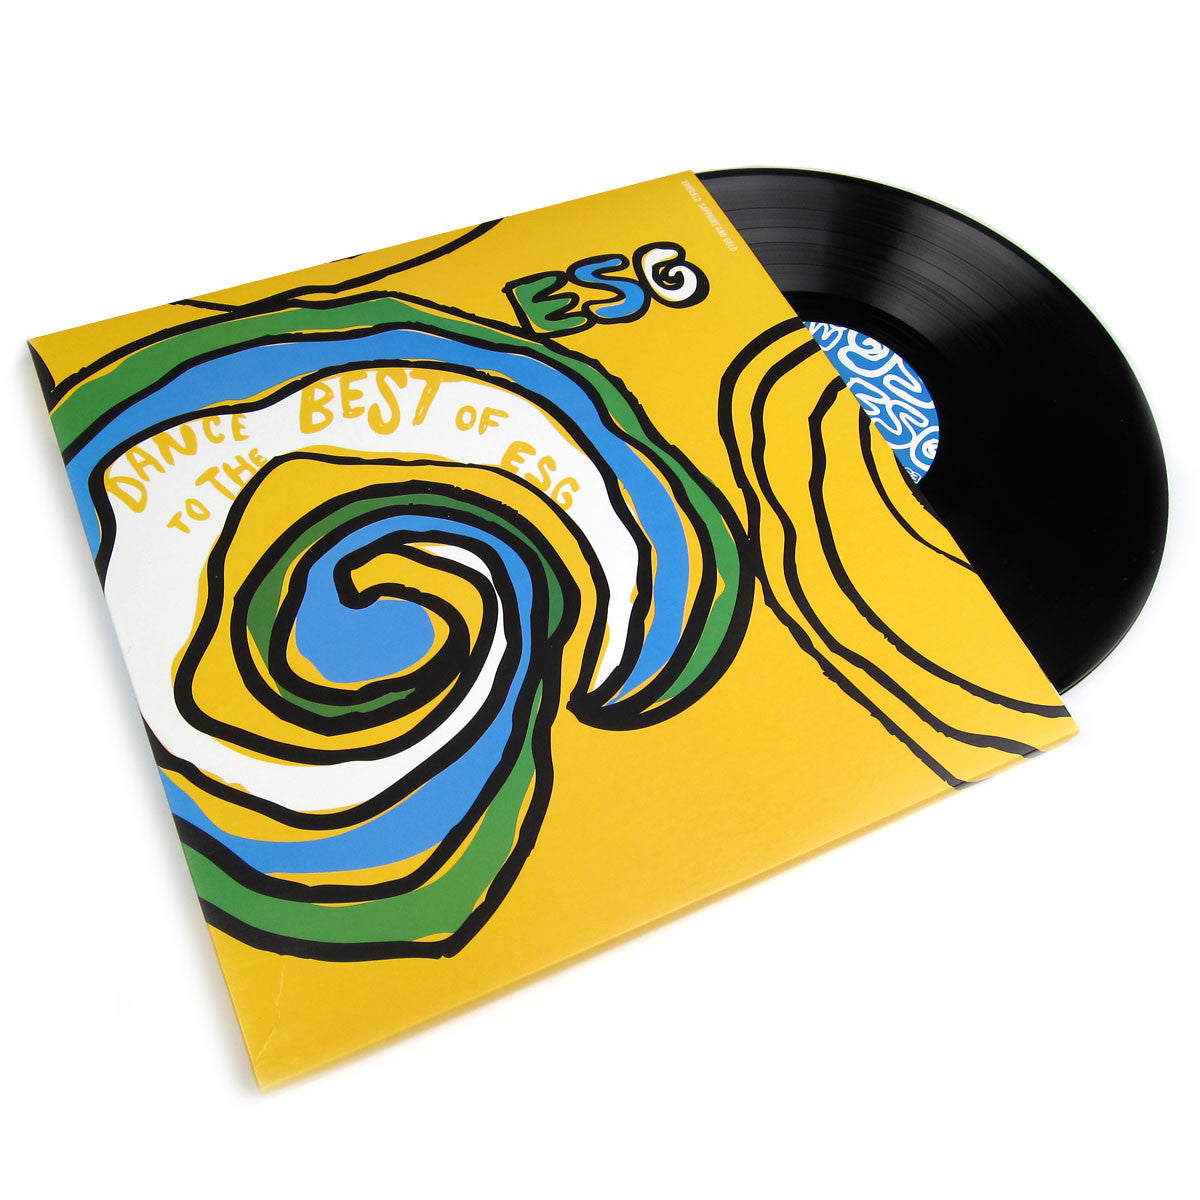 ESG: Dance To The Best Of ESG Vinyl 3LP